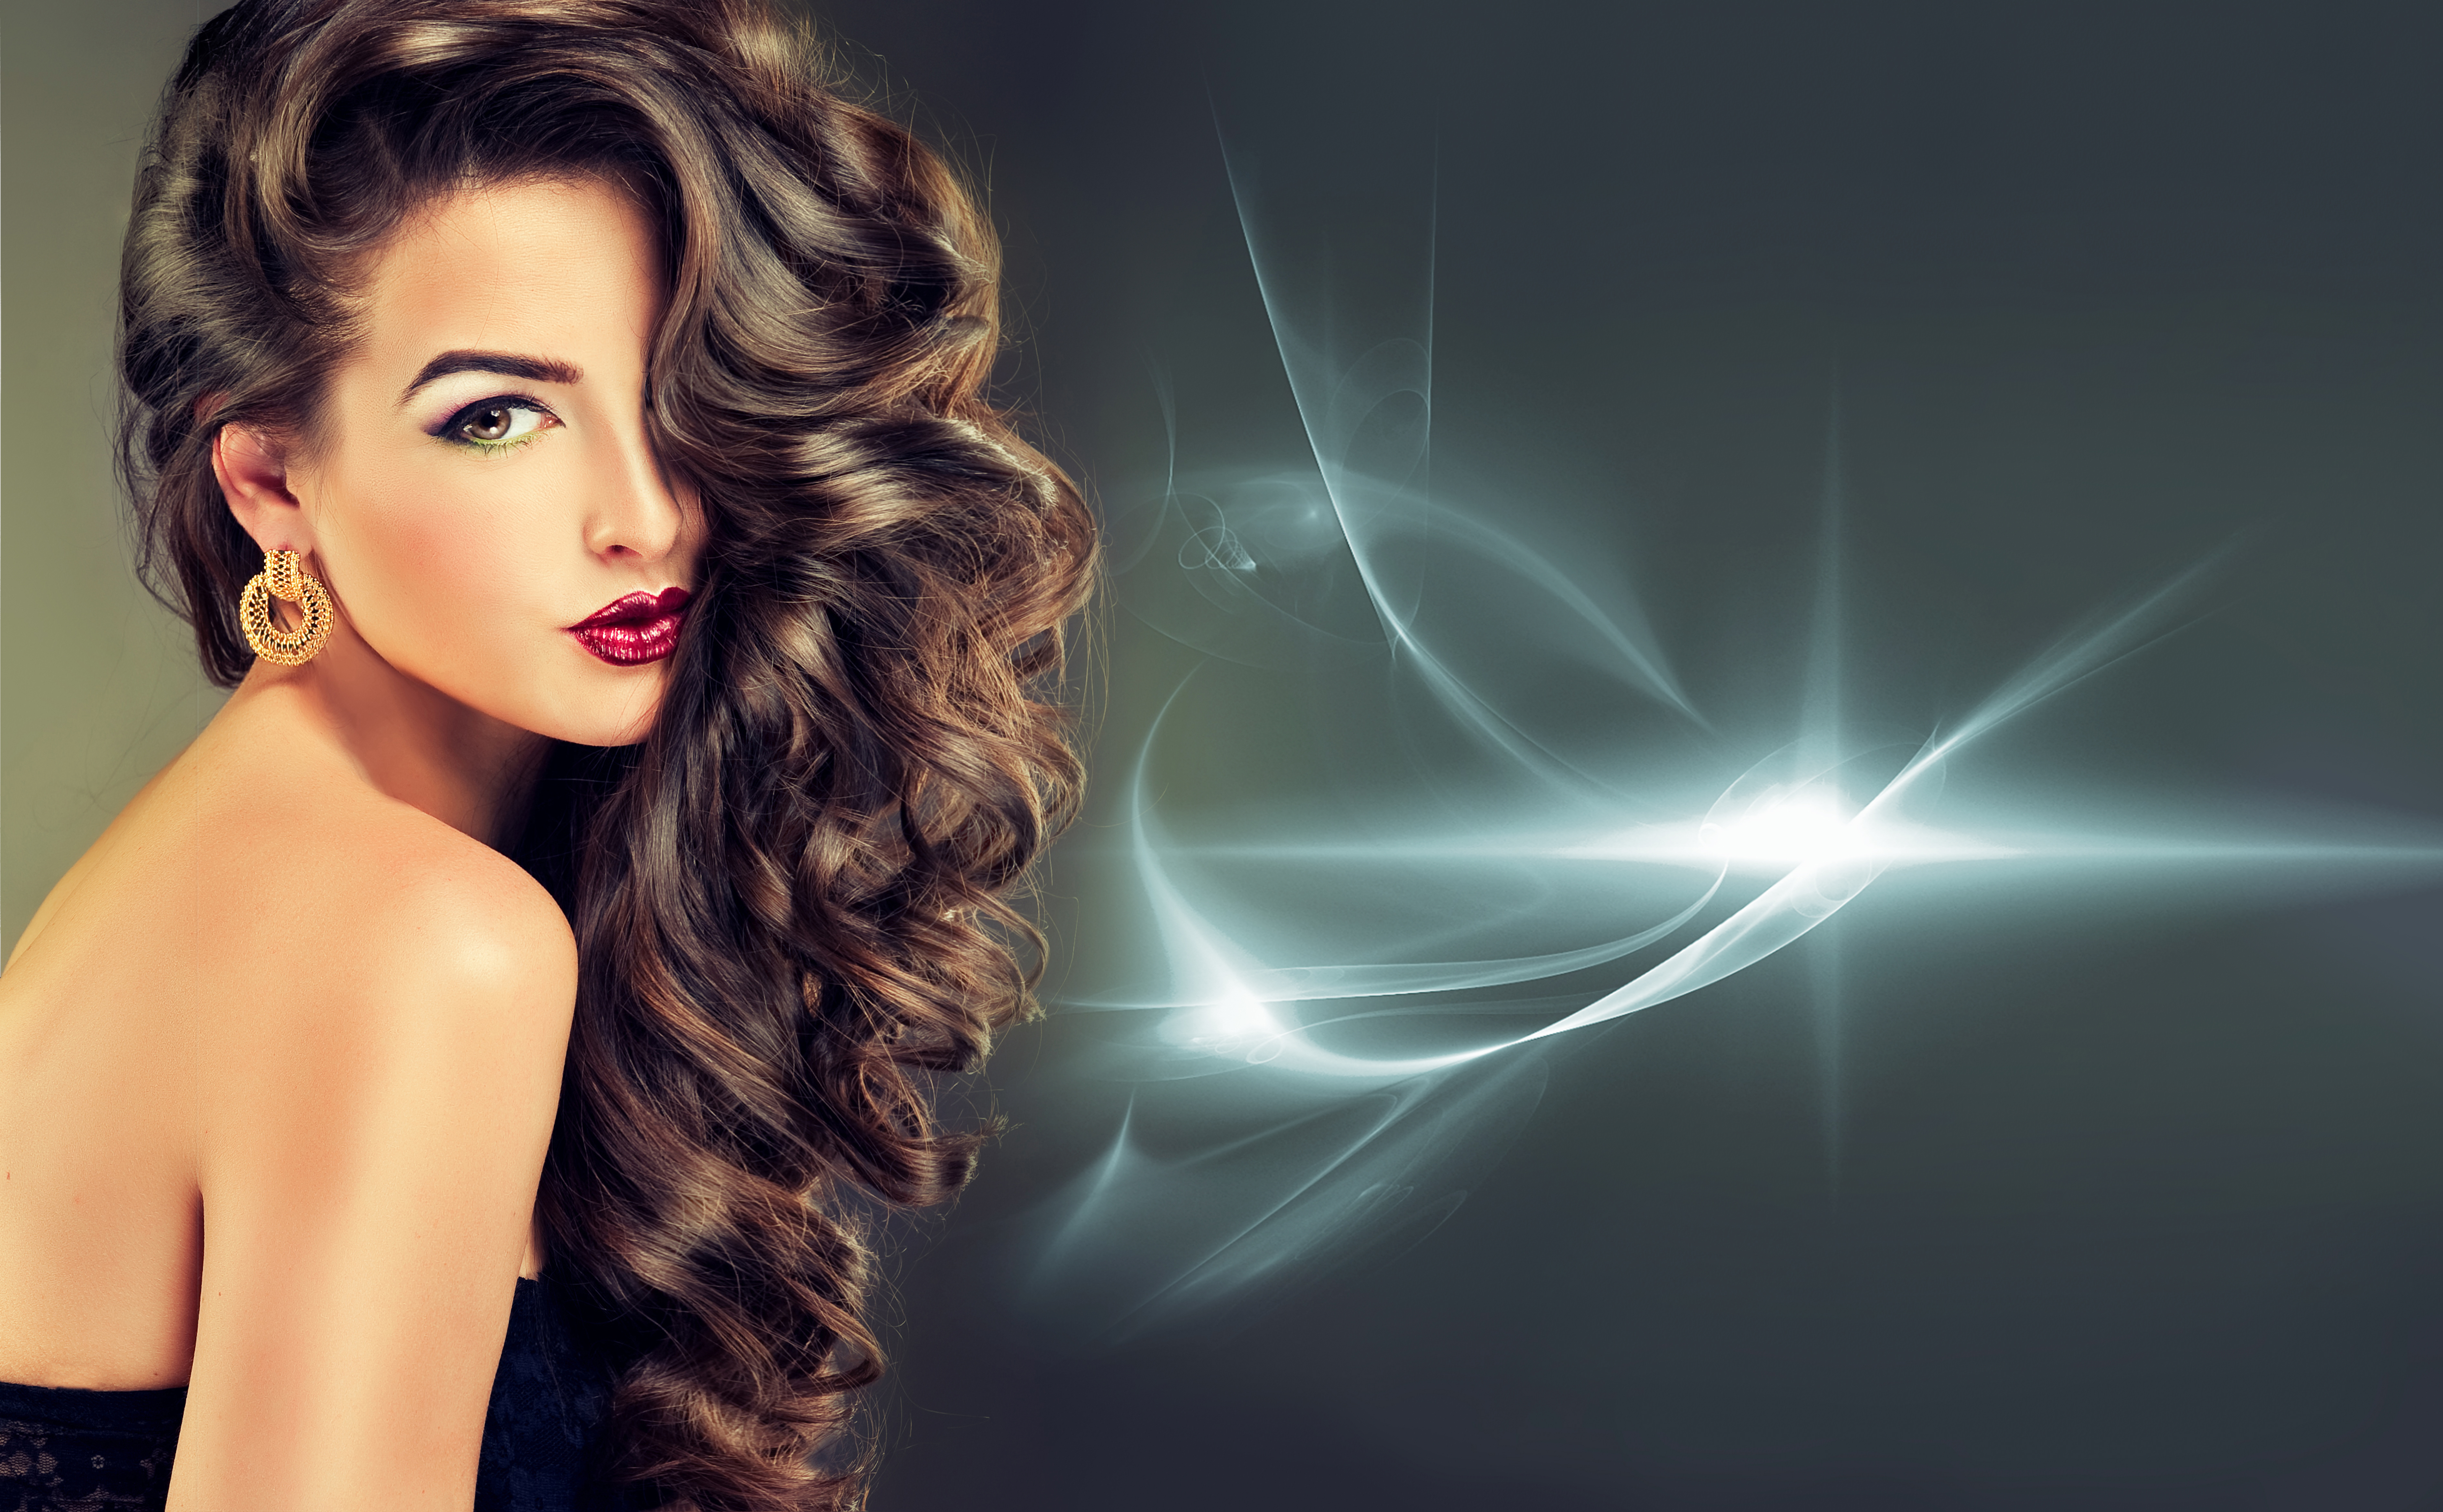 Beautiful Model Brunette With Long Curled Hair 5k Retina Ultra HD